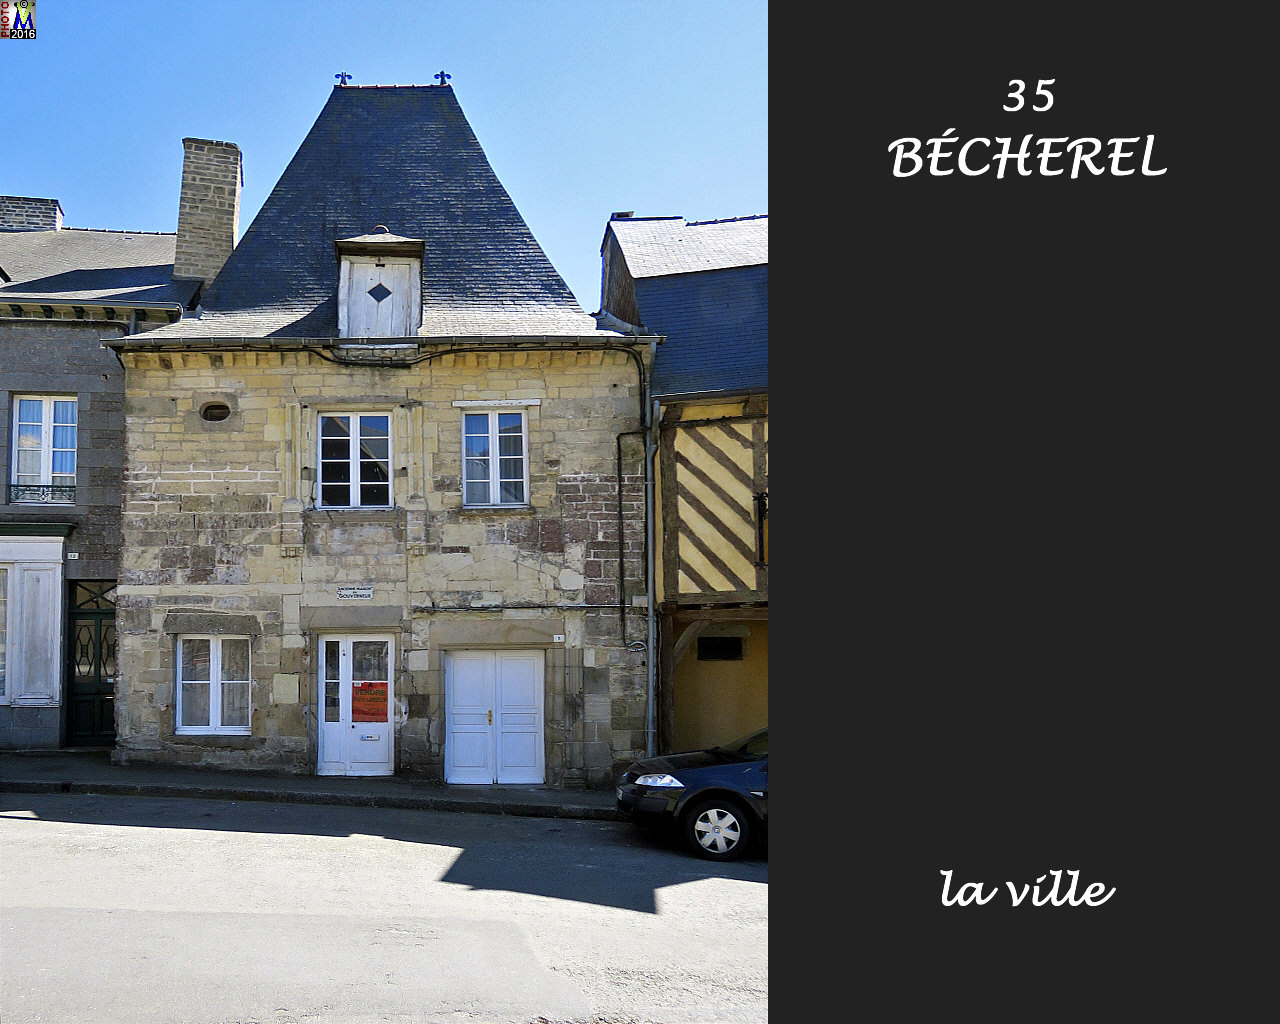 35BECHEREL_ville_112.jpg